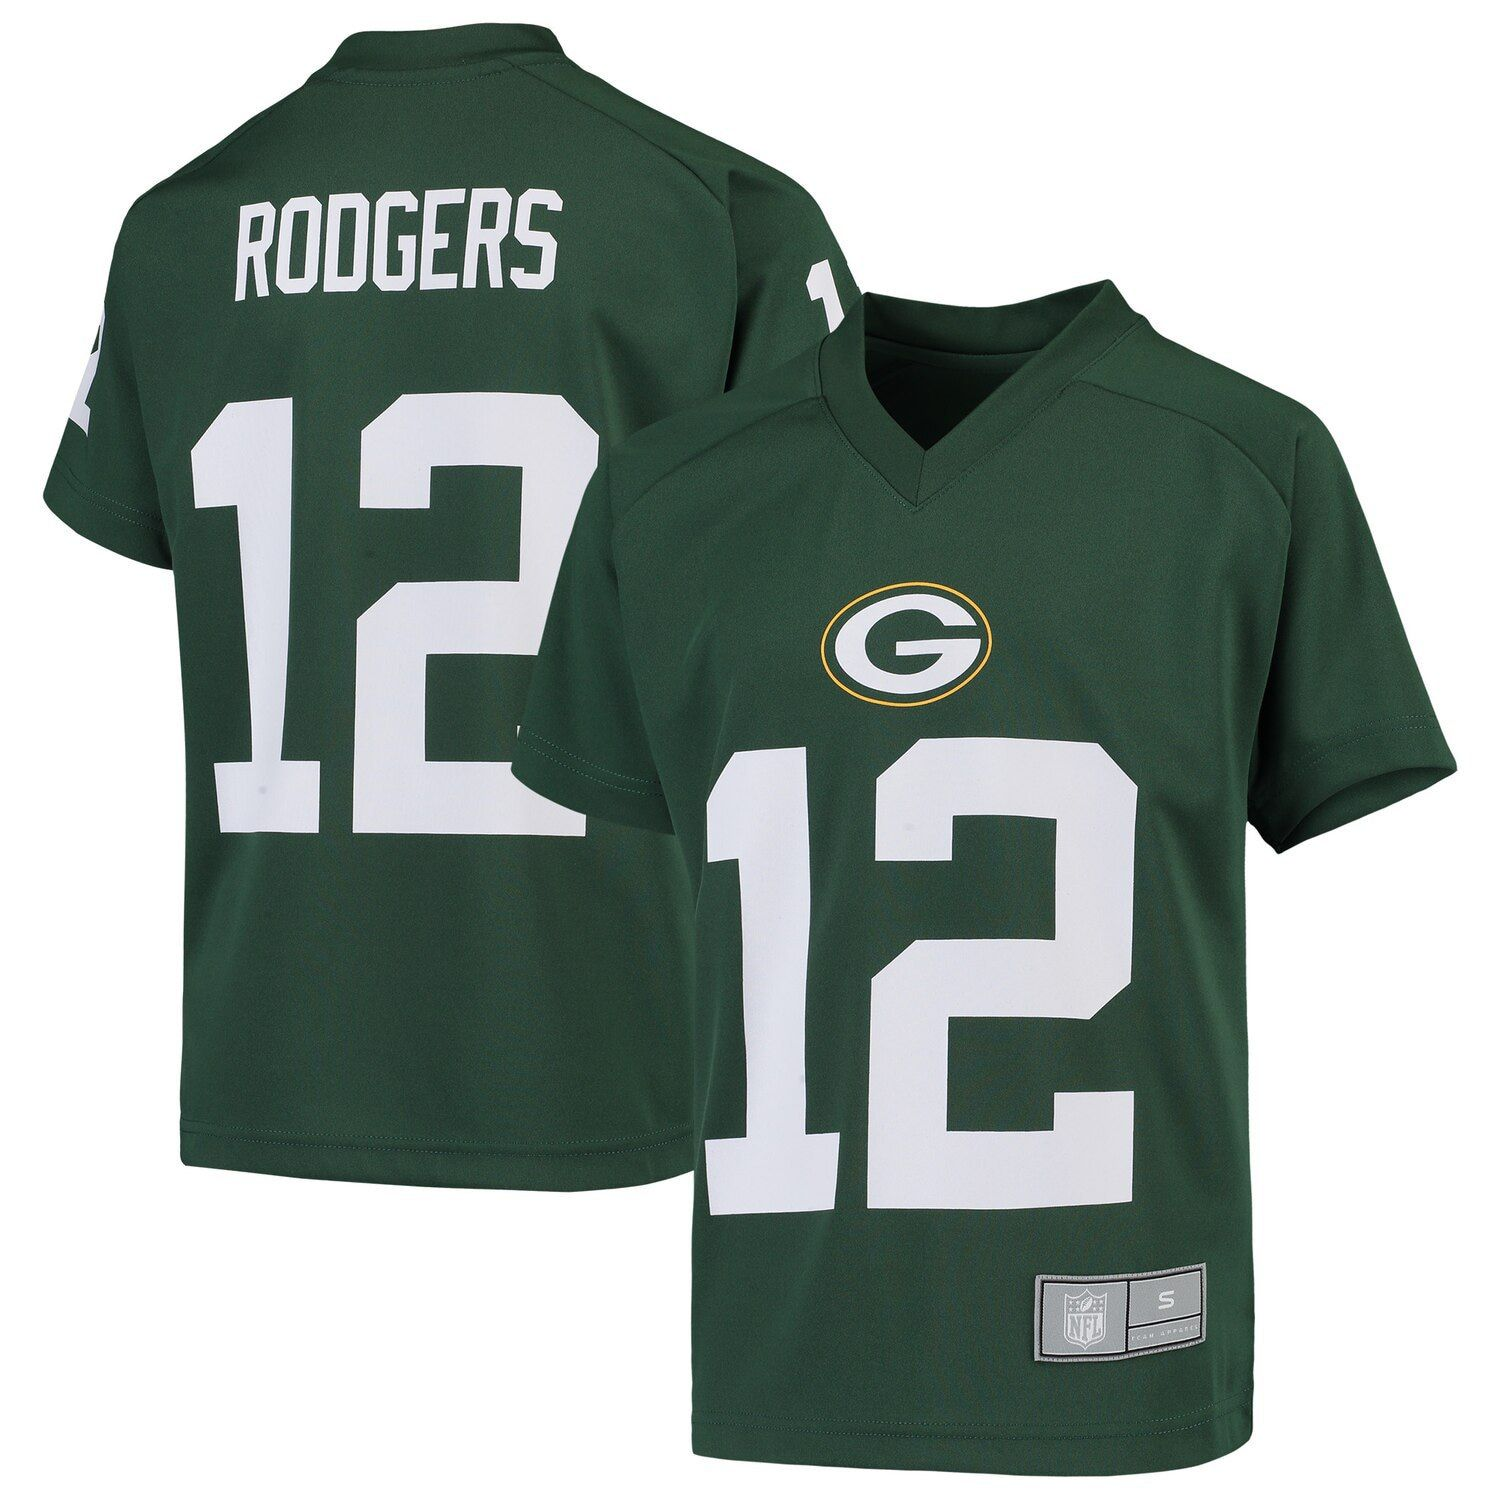 Youth Aaron Rodgers Green Green Bay Packers Player Name Number V Neck Top In 2020 Green Bay Packers Players Green Bay Packers Green Bay Packers Jerseys